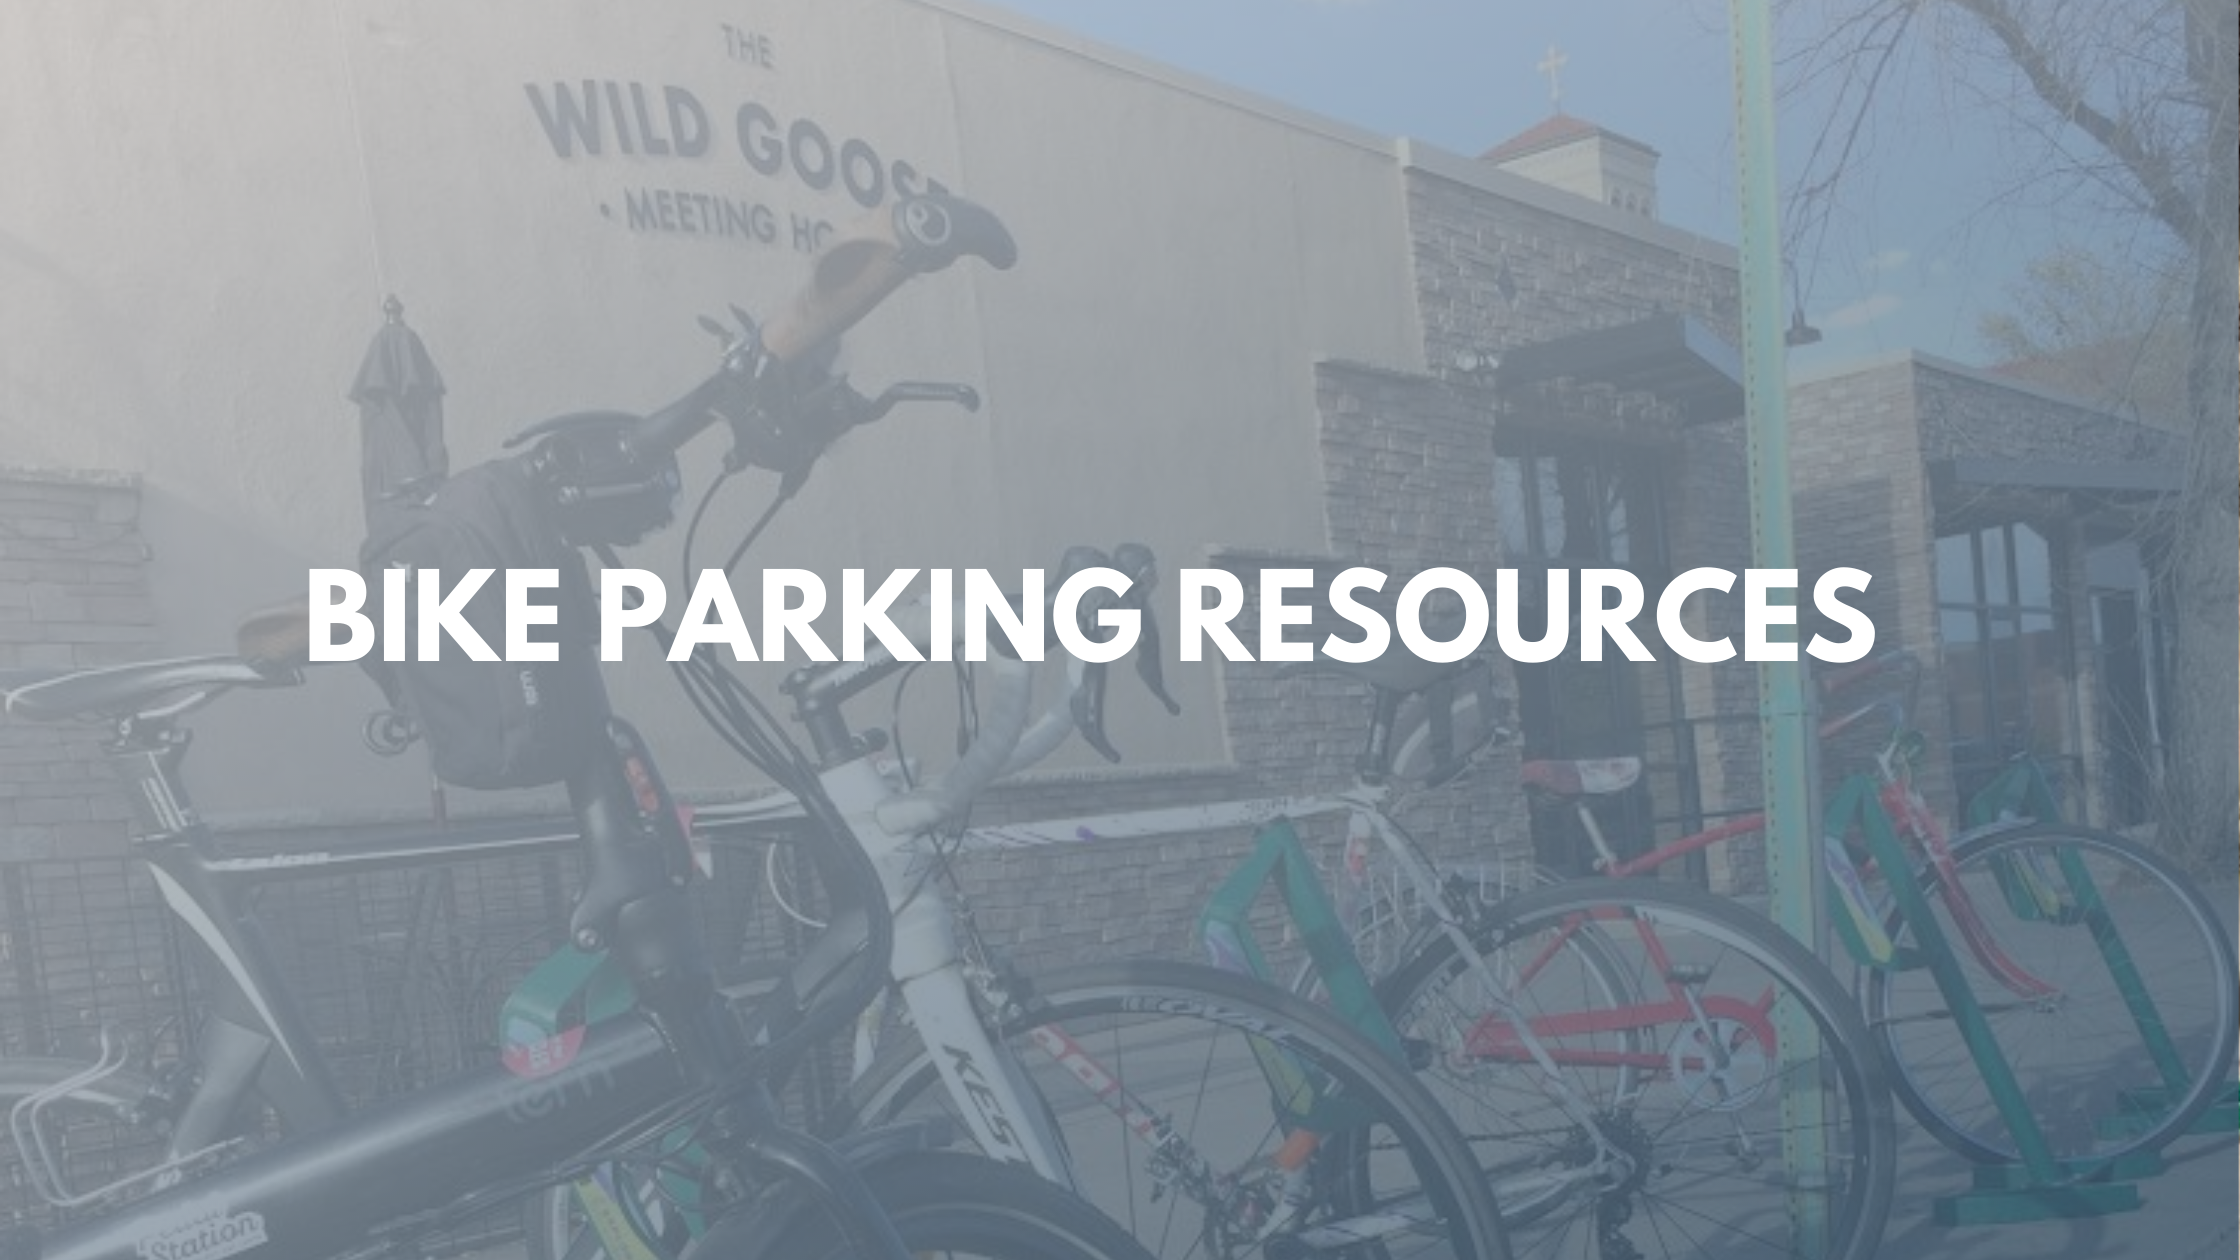 Bikeparking Resources